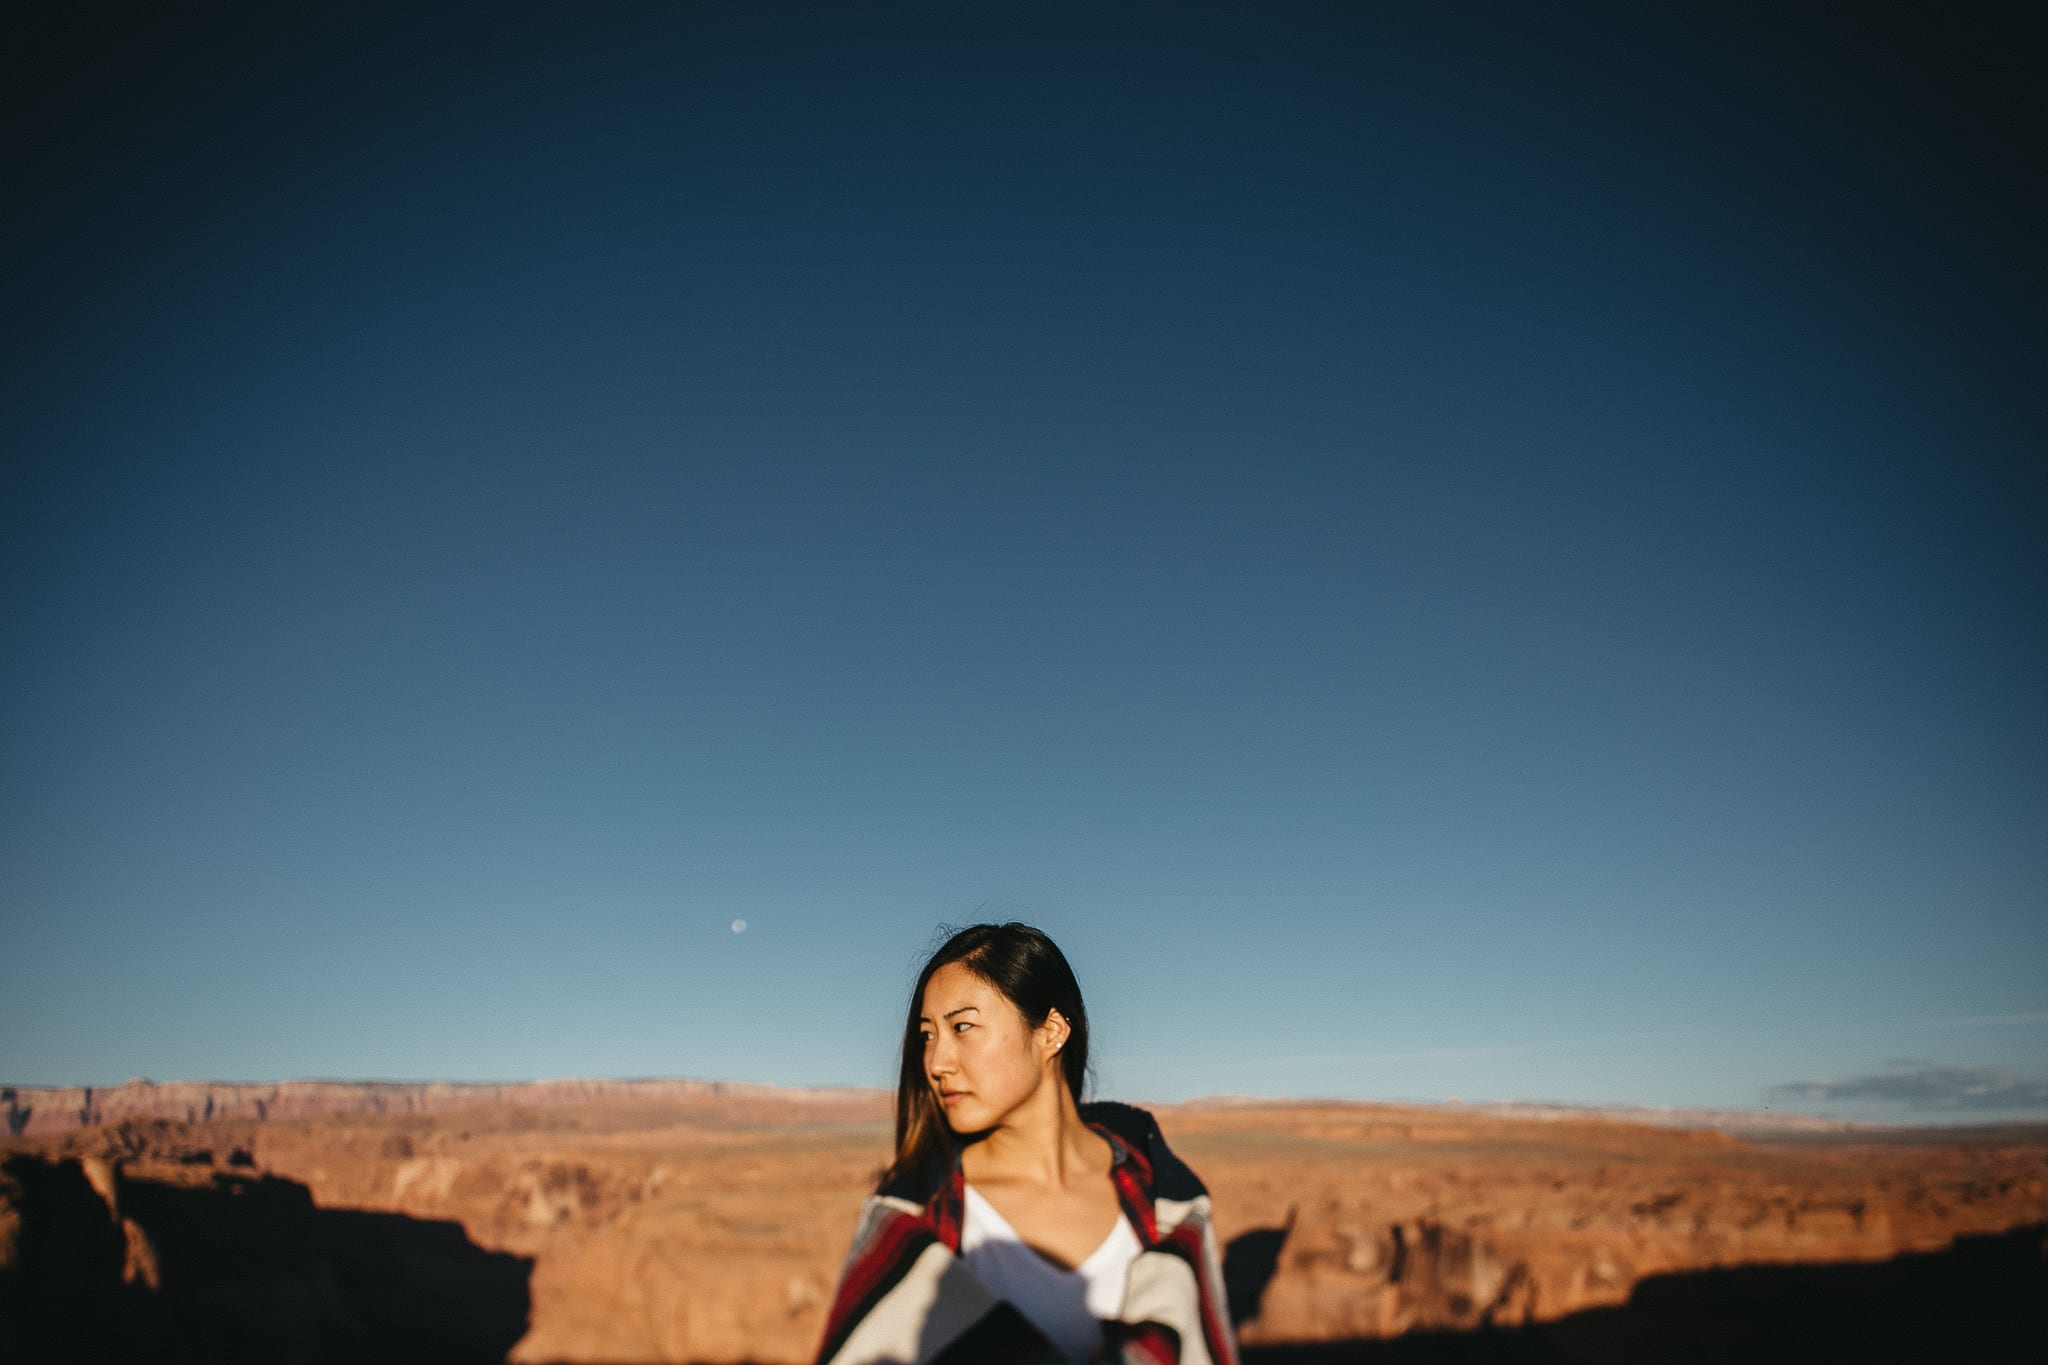 jc2-horseshoe-bend-antelope-cannyon-arizona-lifestyle-portrait-photographer-9